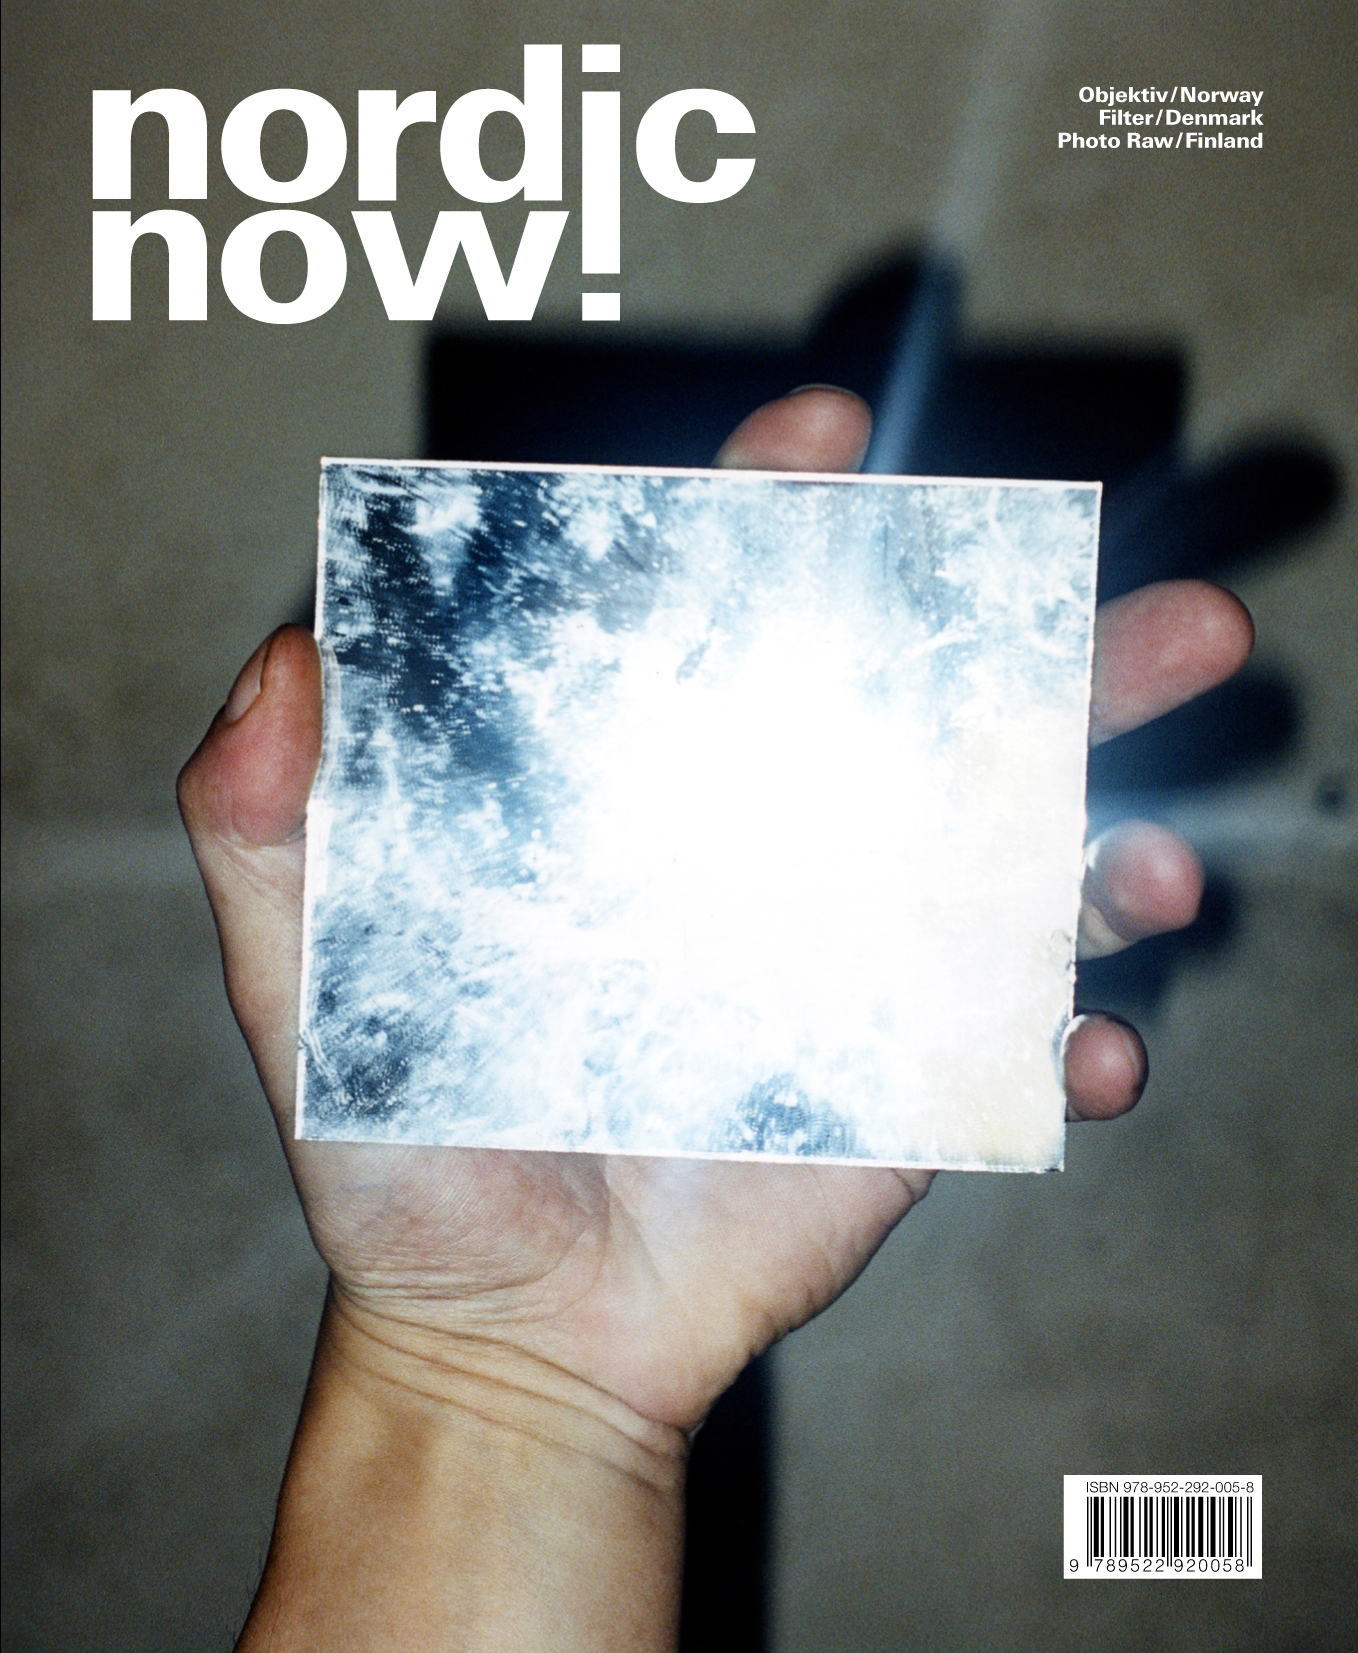 nordic now!     Special issue on Nordic contemporary photography.   The publication nordic now! is the result of a unique collaboration between the photo magazines  Filter  (Denmark),  Photo Raw  (Finland) and the art journal  Objektiv  (Norway). Featuring portfolios by over fifty established and upcoming Nordic artists such as JH Engström, Joakim Eskildsen, Erica Kovanen, Mårten Lange, Nelli Palomäki, RAX, Marie Sjøvold and Jacob Aue Sobol, it provides an extensive overview of contemporary Nordic photography.